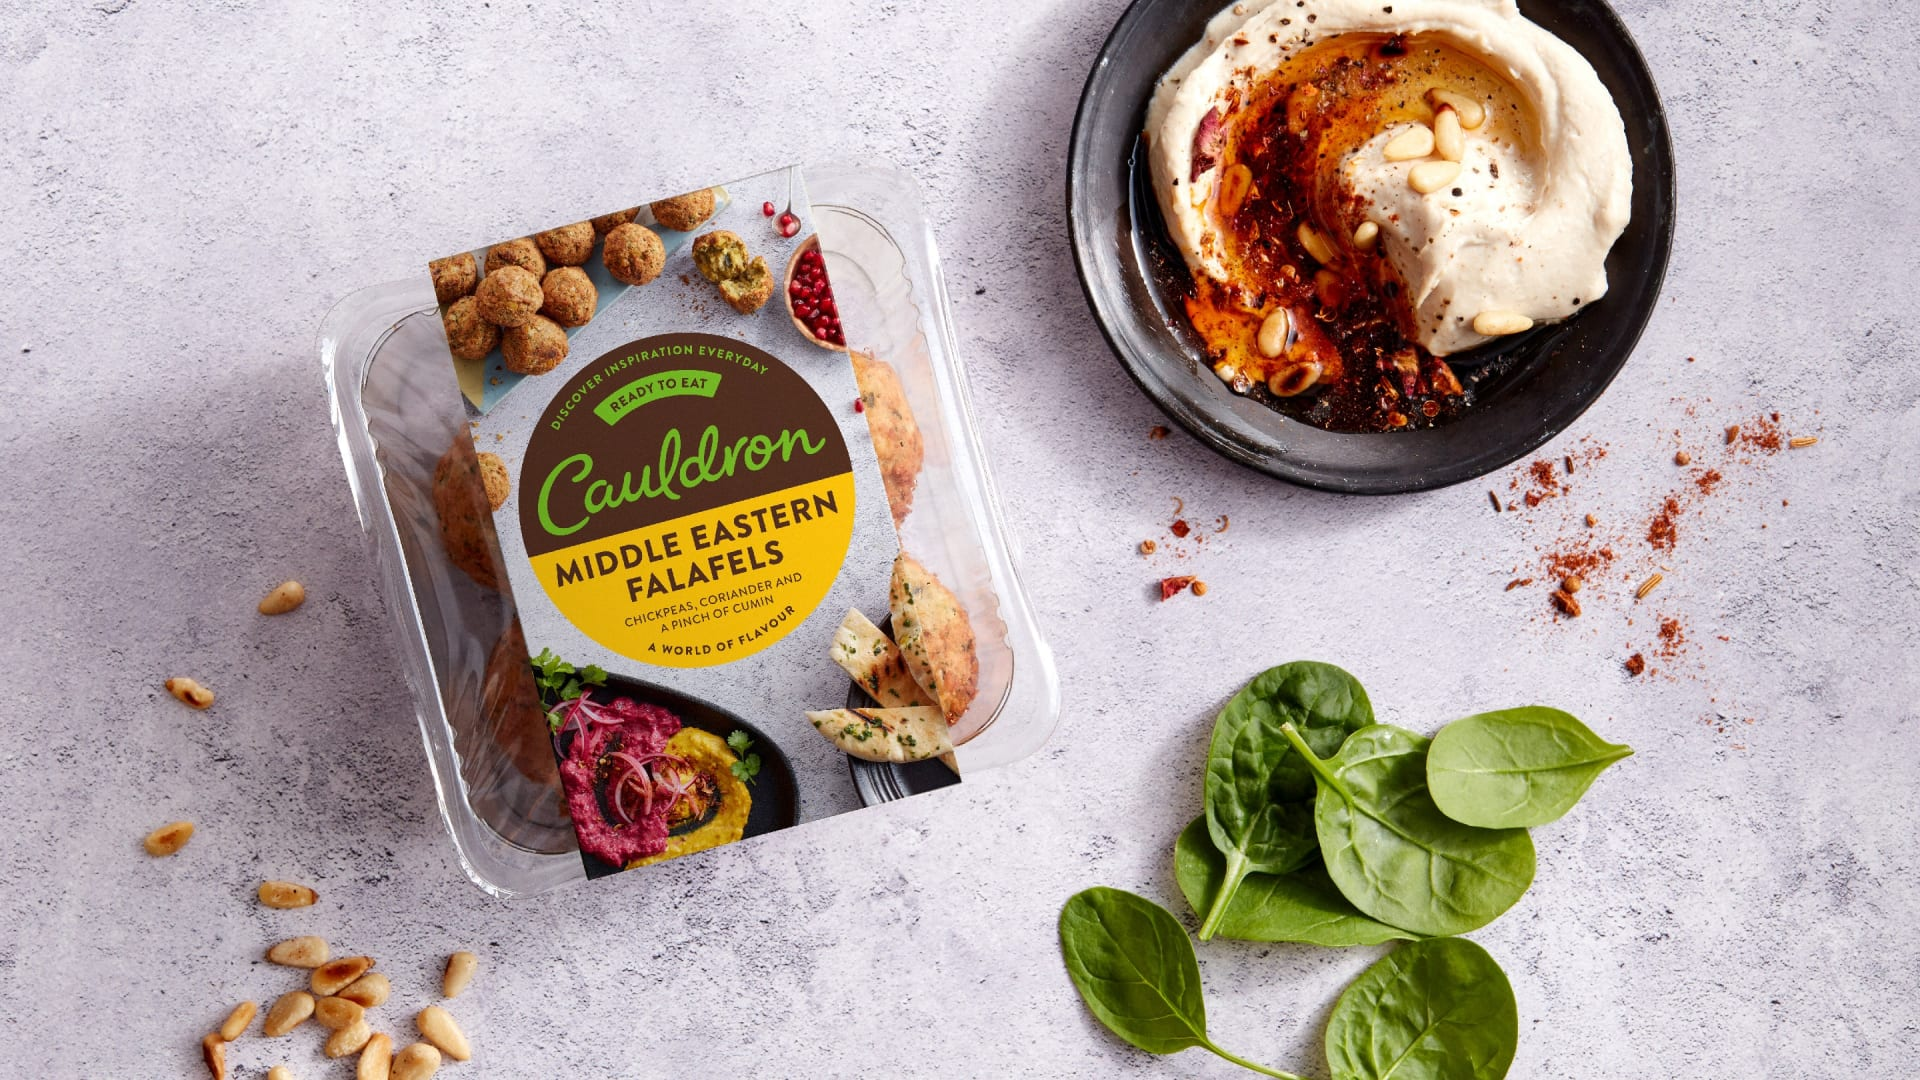 Cauldron falafels brand packaging